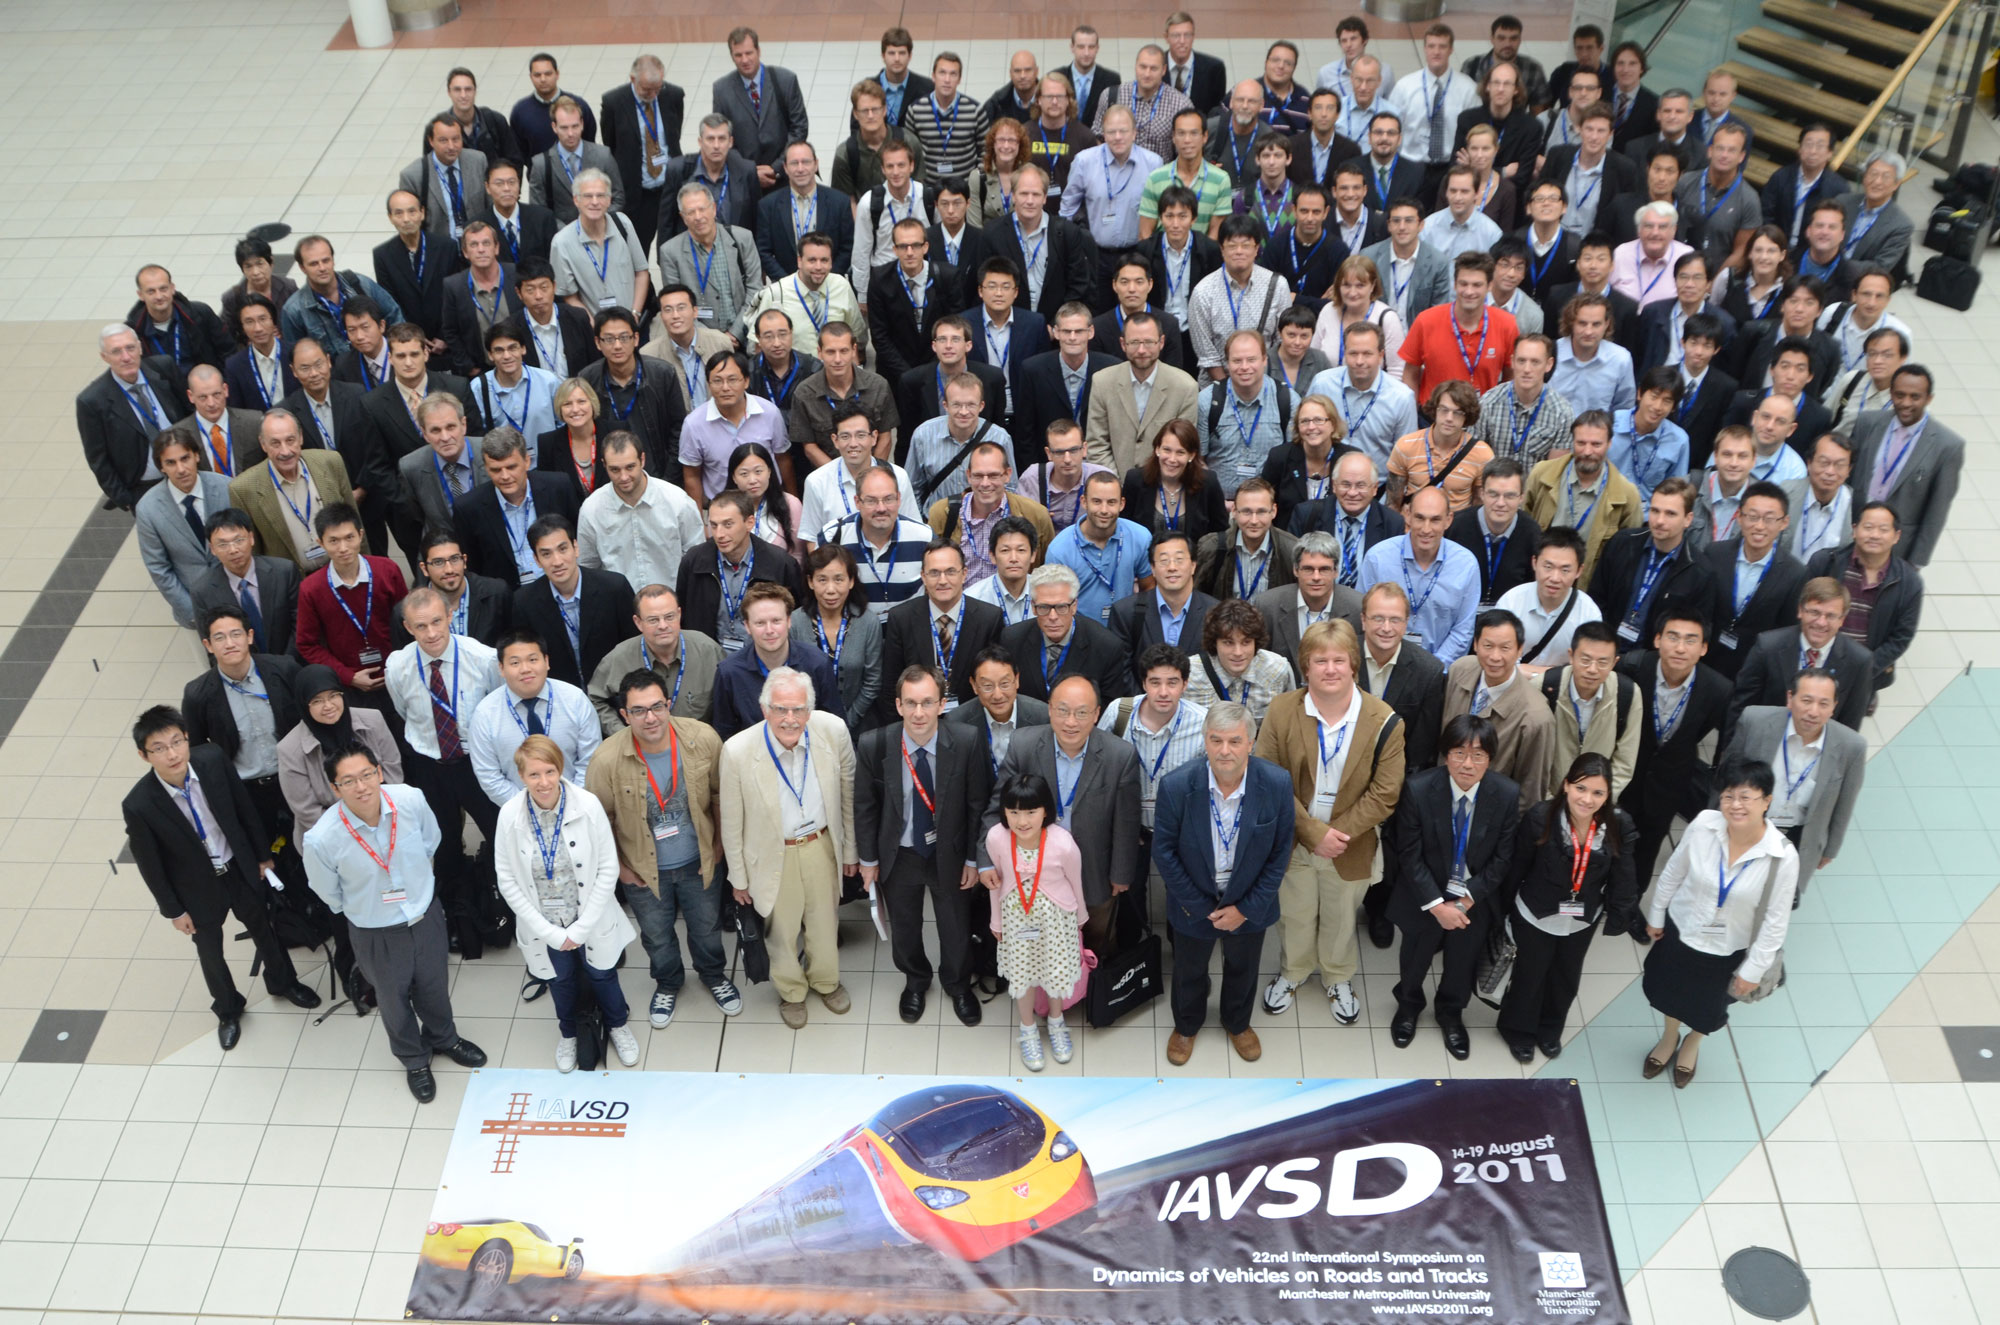 Picture of delegates of IAVSD 2011